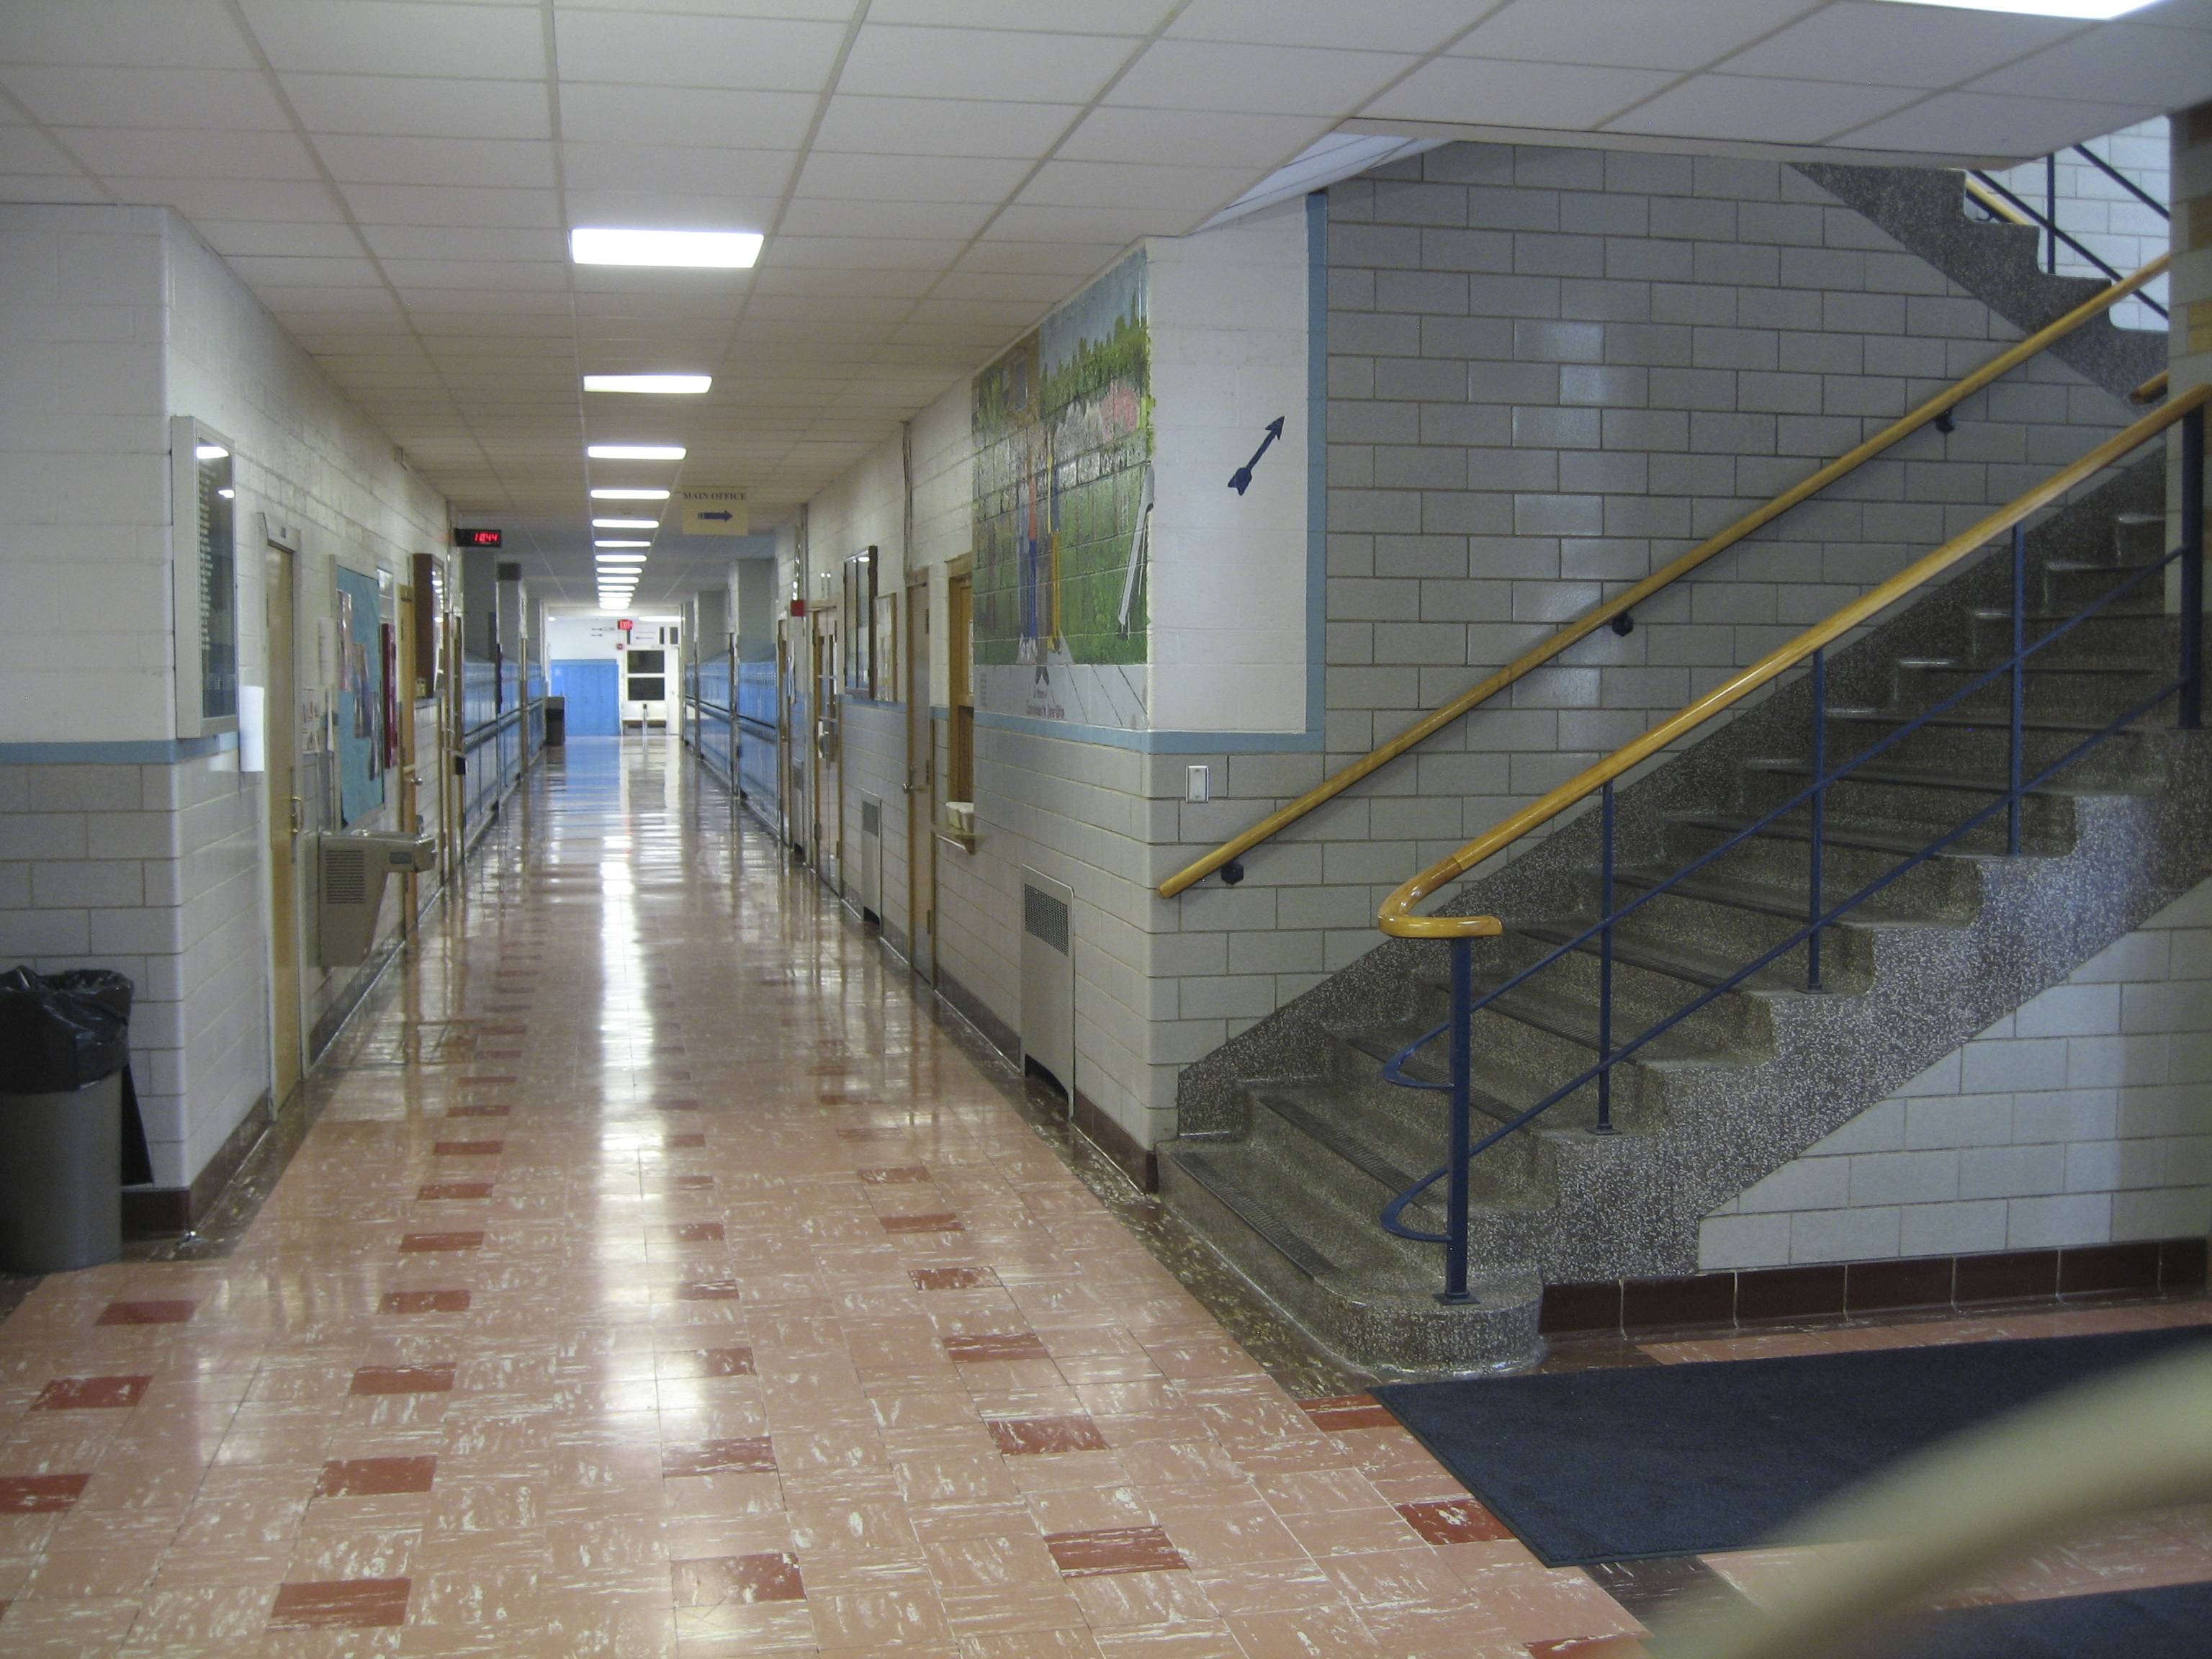 school hallway background - photo #29